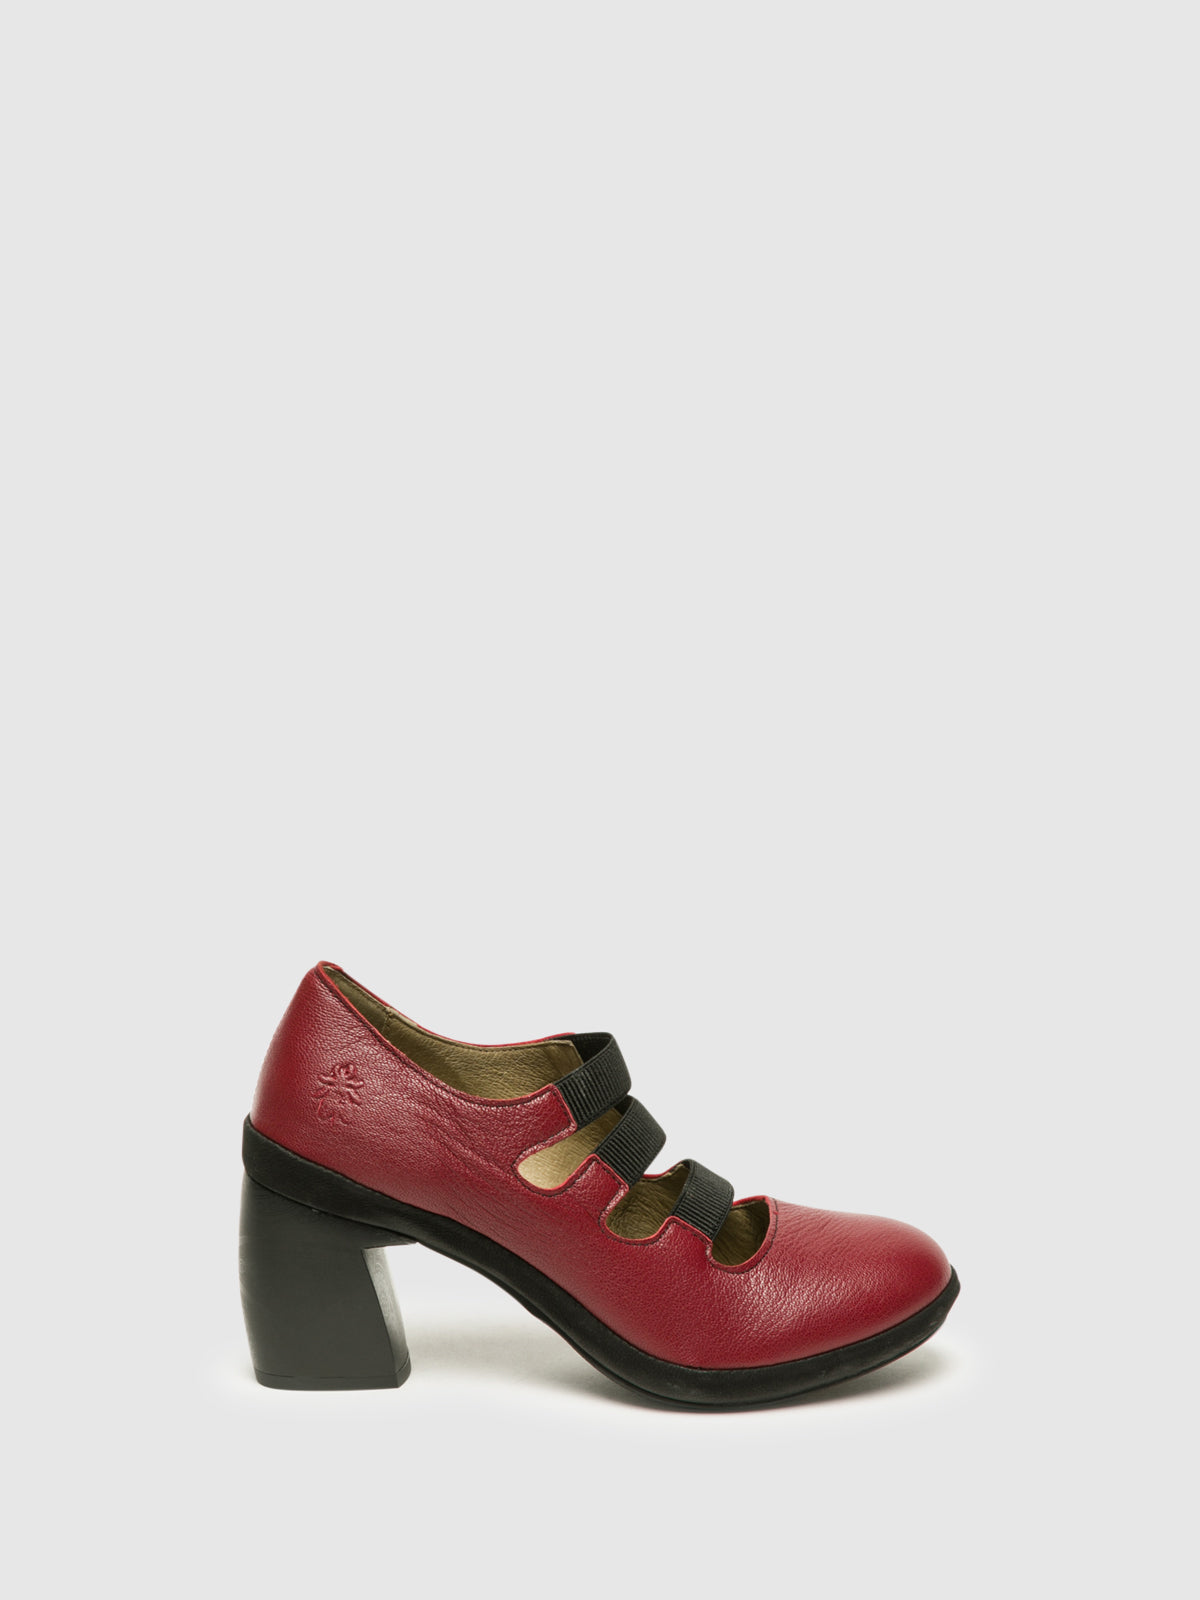 Fly London DarkRed Block Heel Shoes